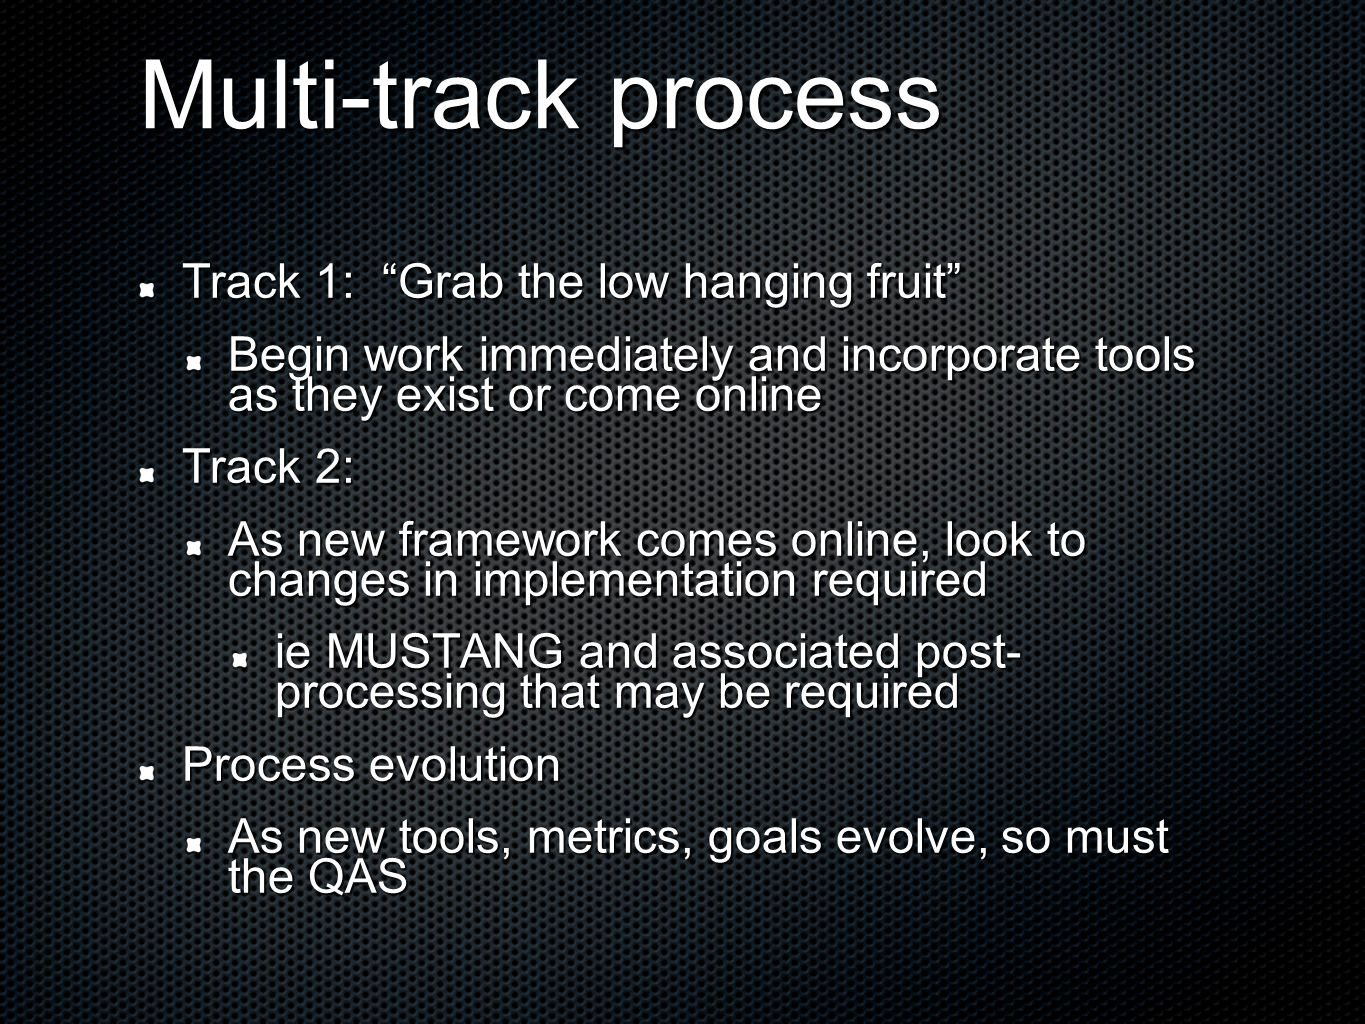 Multi-track process Track 1: Grab the low hanging fruit Begin work immediately and incorporate tools as they exist or come online Track 2: As new framework comes online, look to changes in implementation required ie MUSTANG and associated post- processing that may be required Process evolution As new tools, metrics, goals evolve, so must the QAS